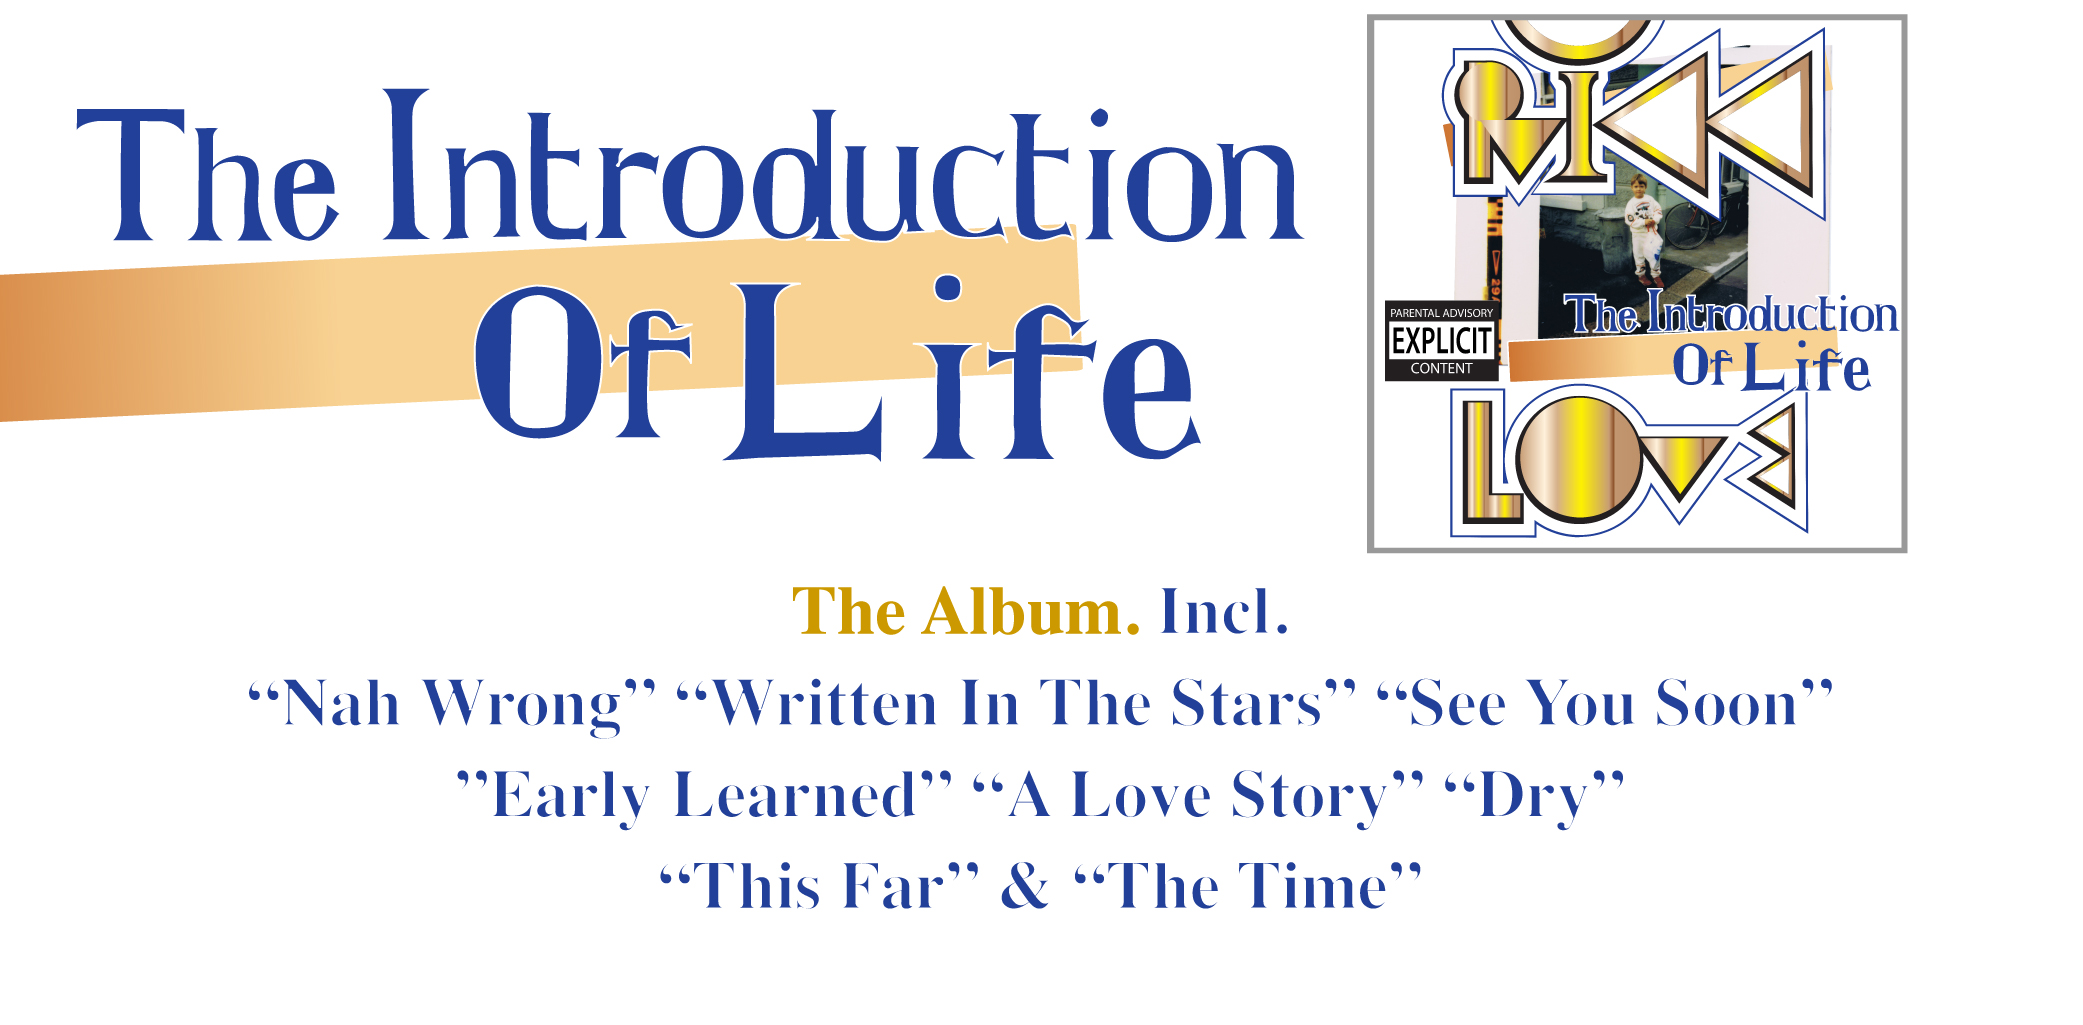 Rikk Love. The Introduction Of Life. Debut album.